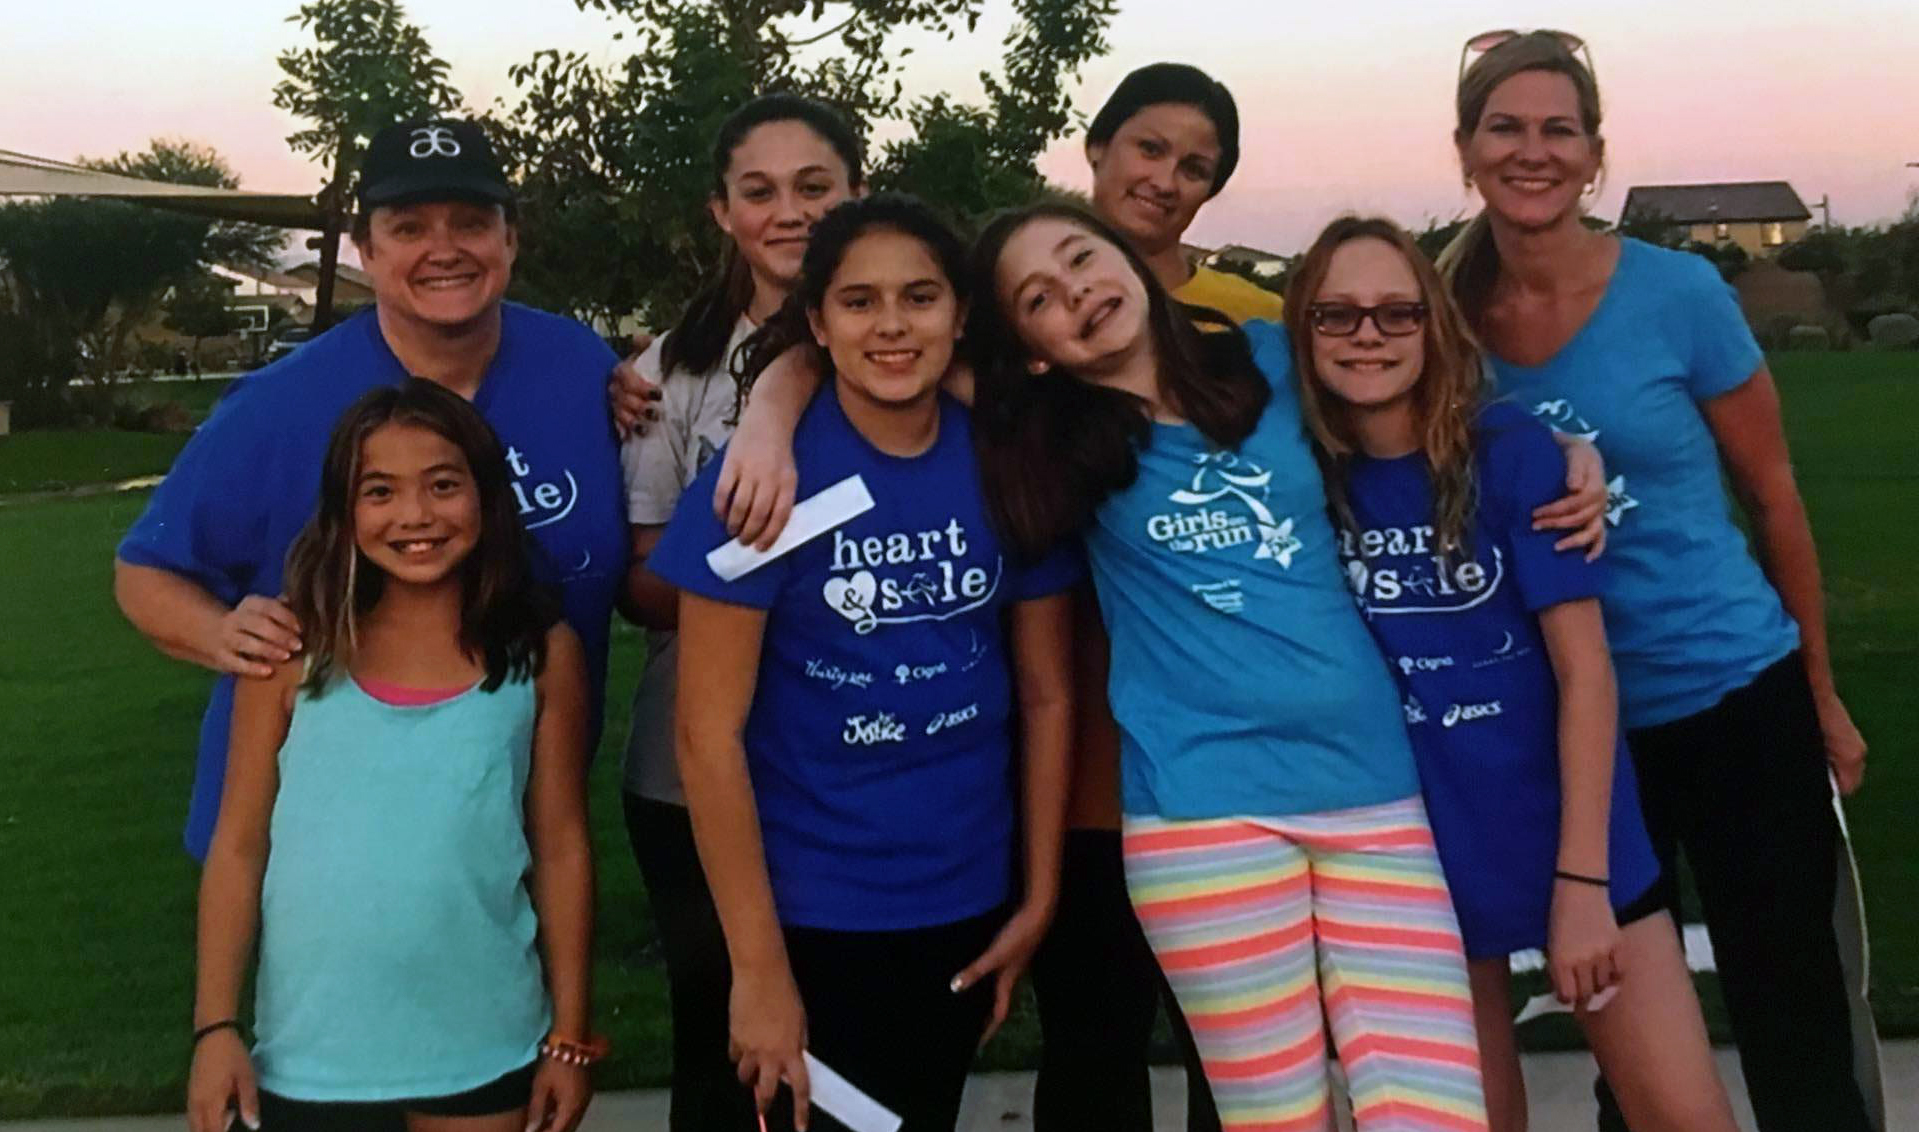 #iameastmark: Jennifer Hanlin & Girls on the Run